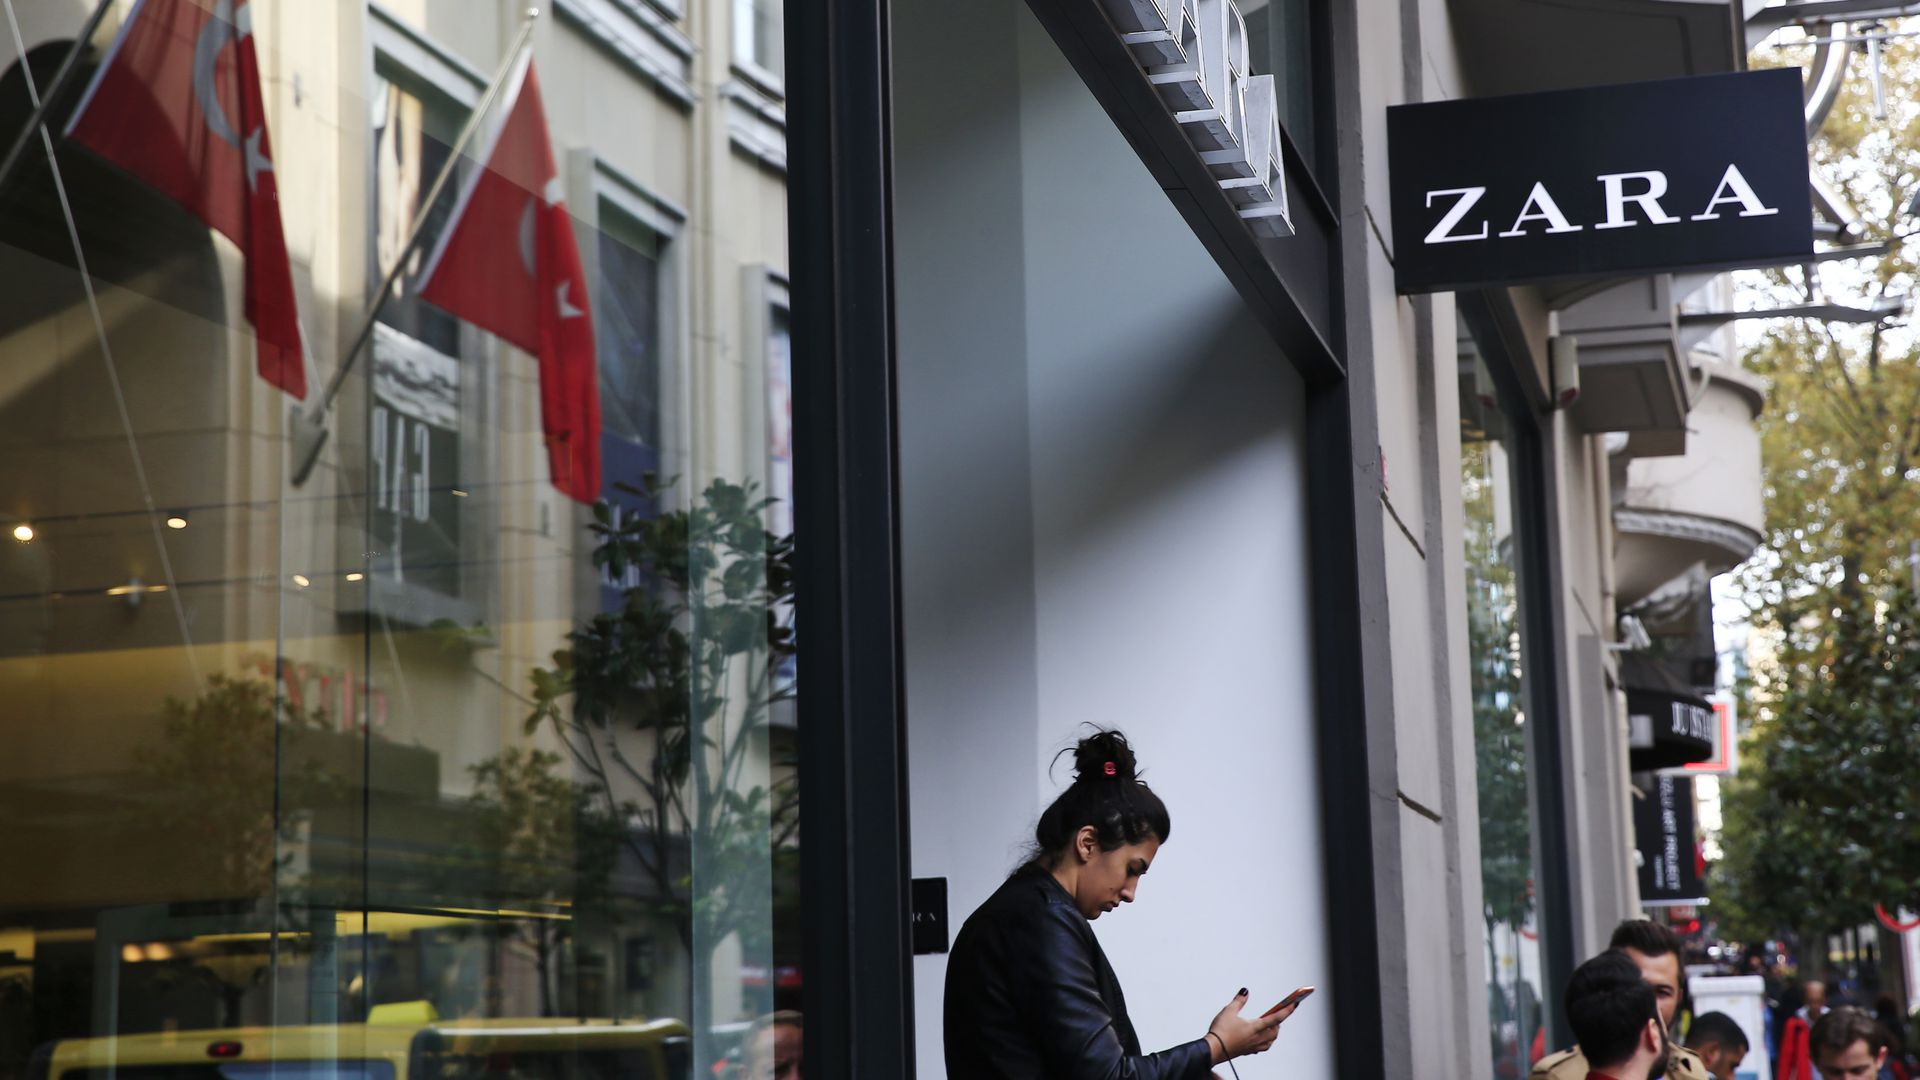 Photo of women gazing at cellphone in front of Zara store in an upscale Istanbul neighborhood